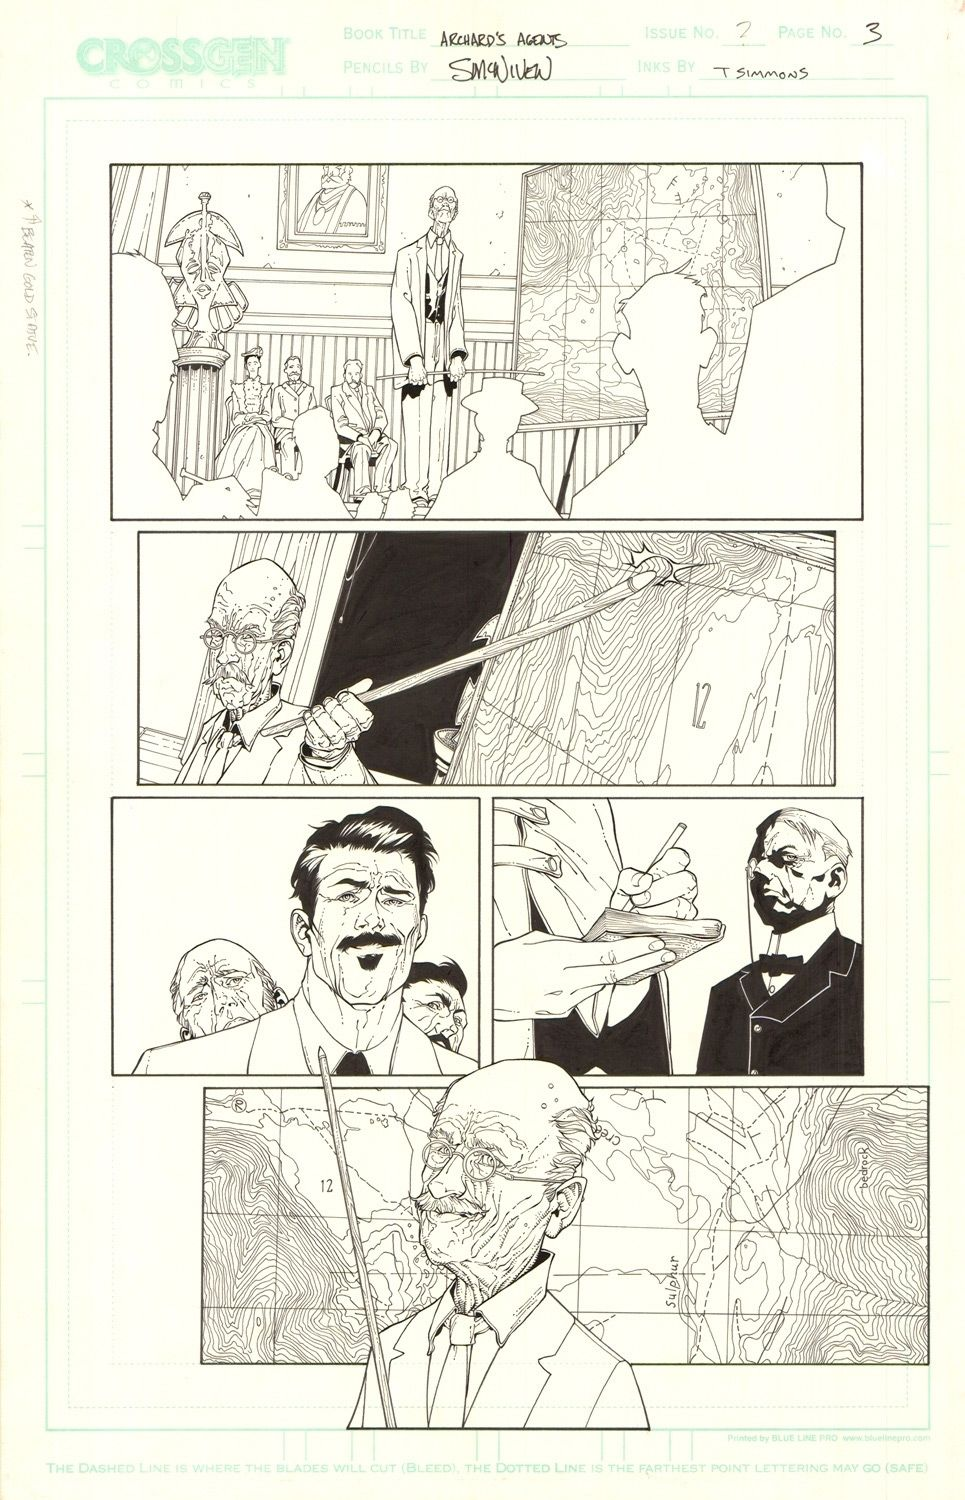 Archard's Agents #3 / 3